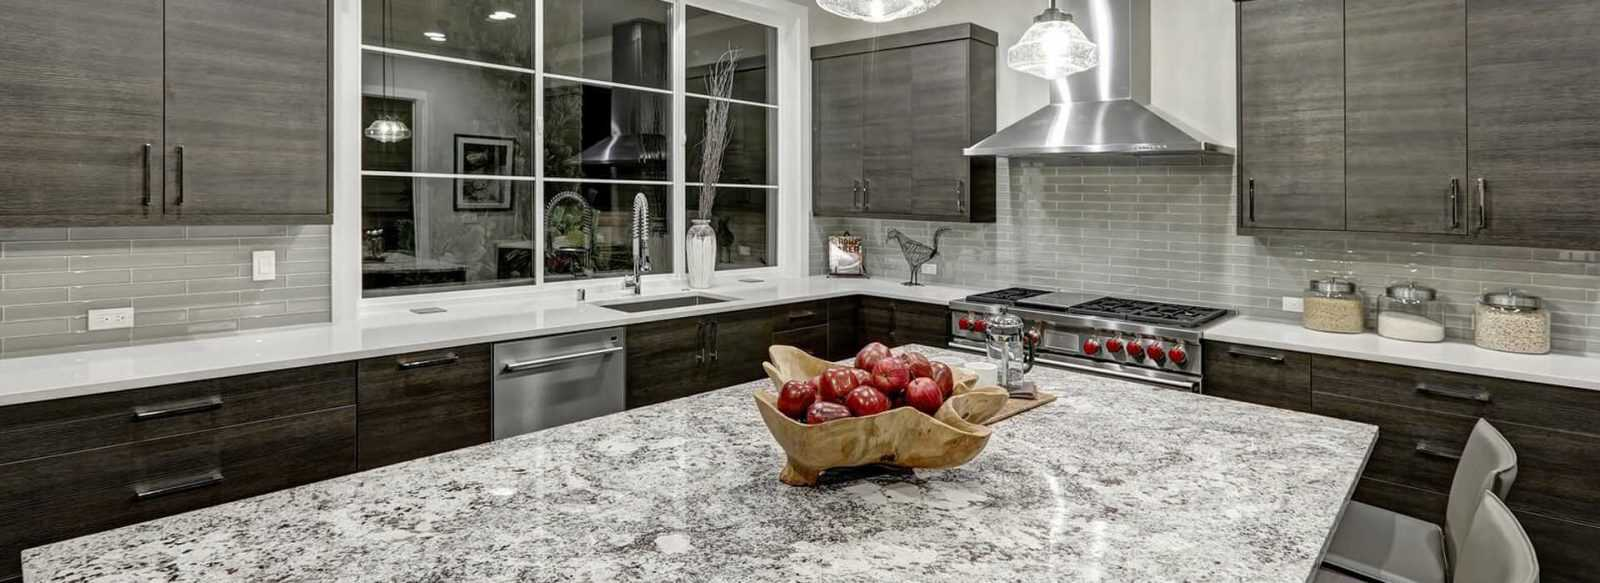 Countertops Chicago